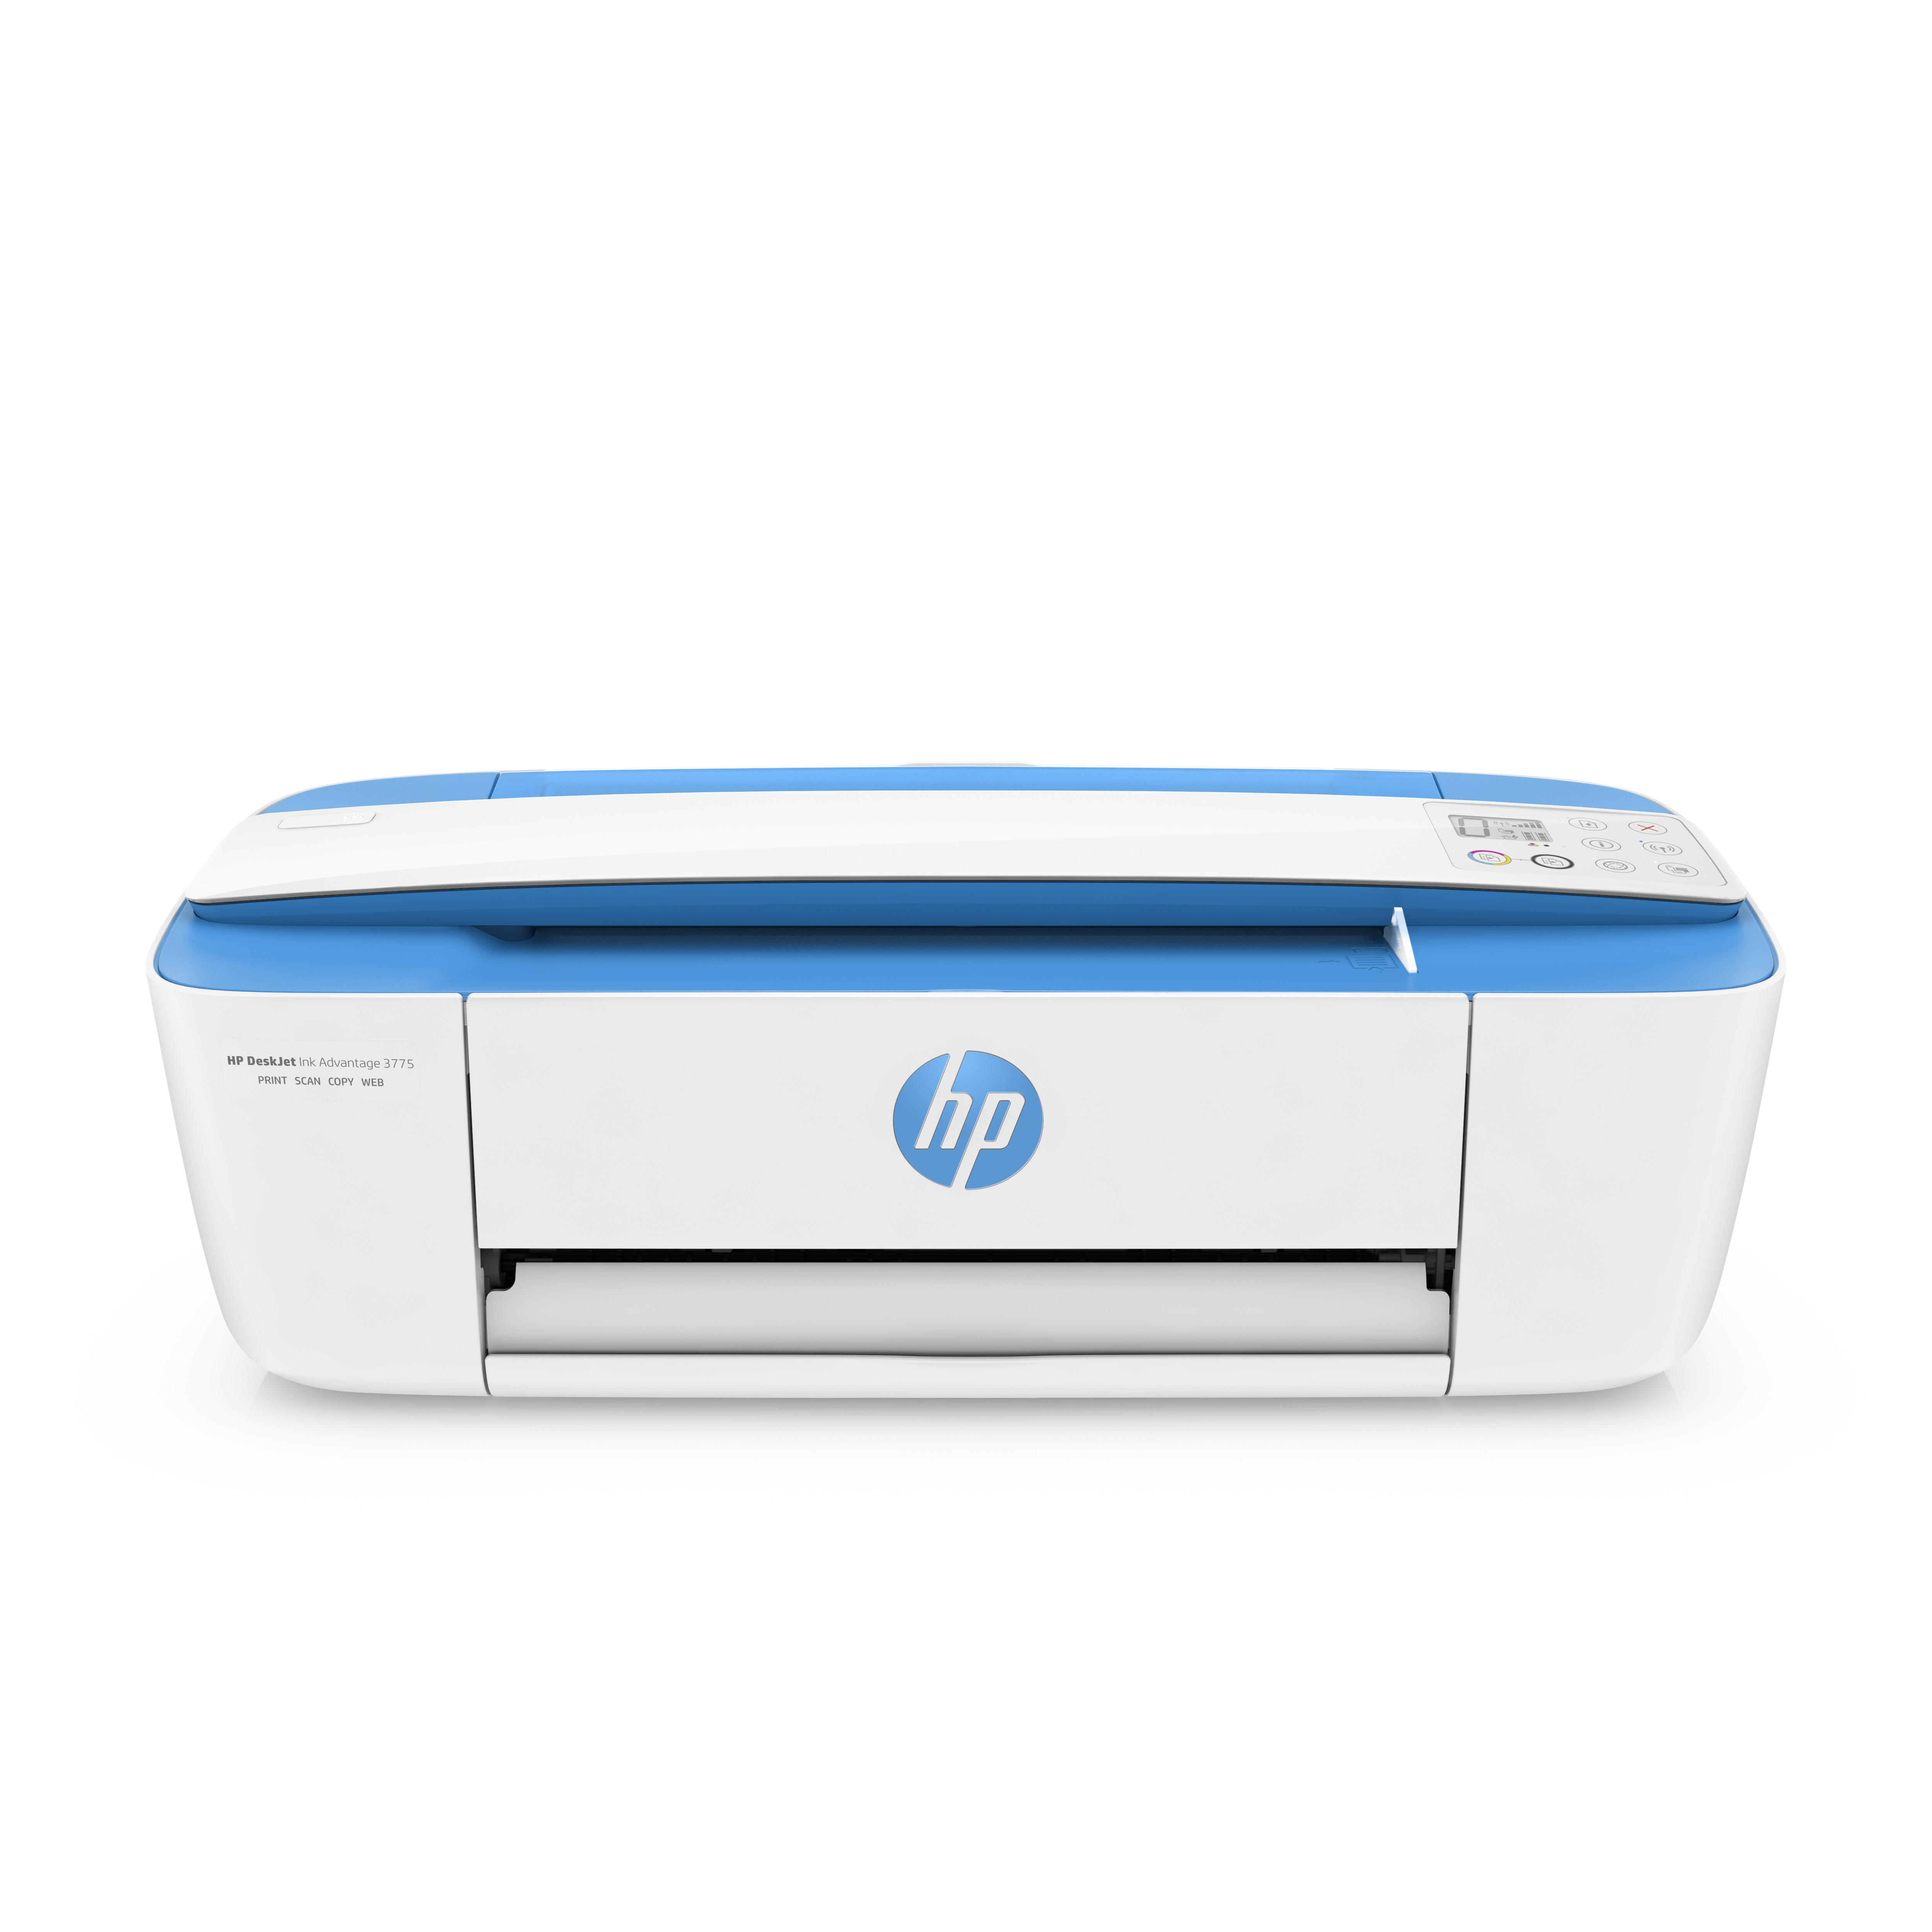 hp deskjet The world's smallest all-in-one printer is compact, wireless and affordable print, scan and copy with your smartphone or tablet and get up to 50% savings on ink find out where to get yours today.